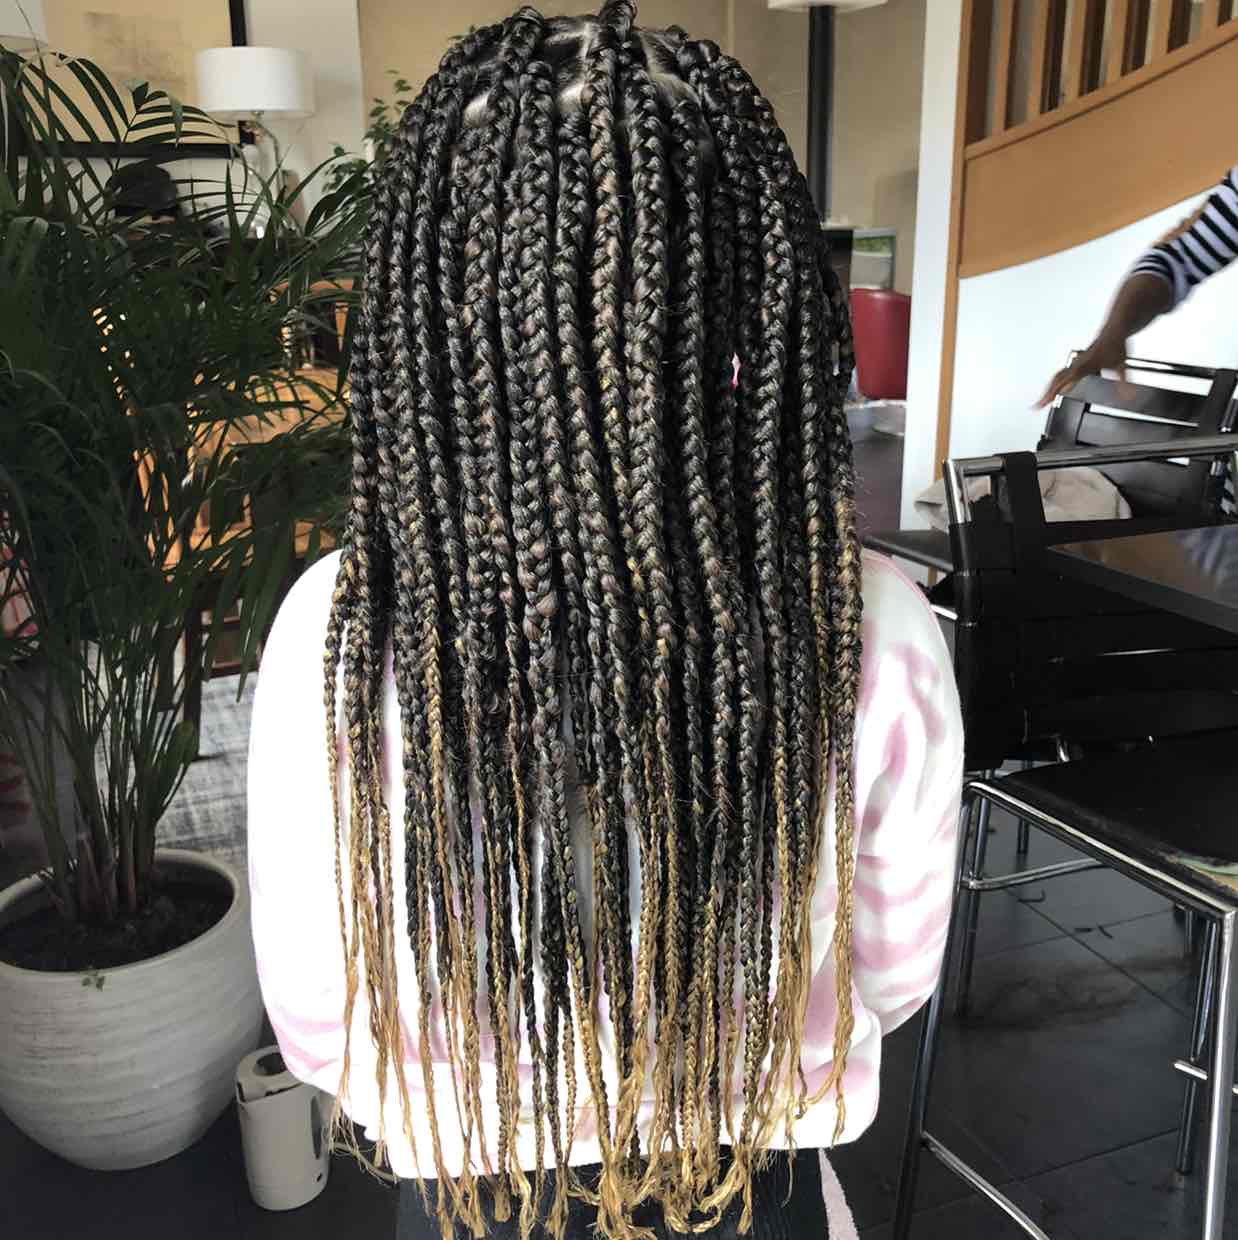 salon de coiffure afro tresse tresses box braids crochet braids vanilles tissages paris 75 77 78 91 92 93 94 95 CXMKOABJ